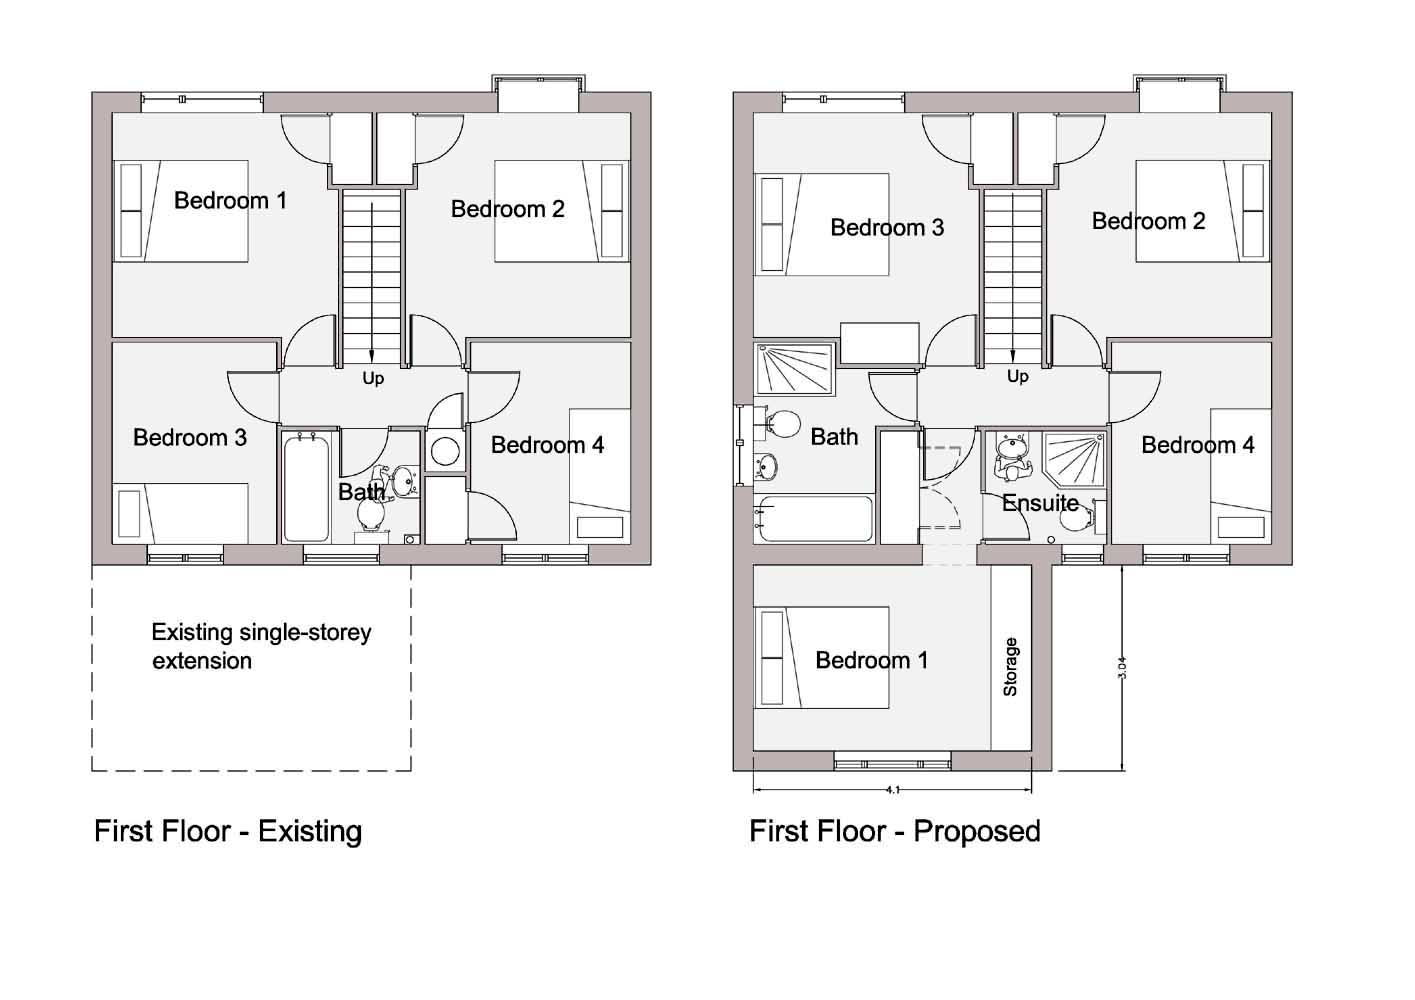 Floor plans and elevations planning drawings are required to show the